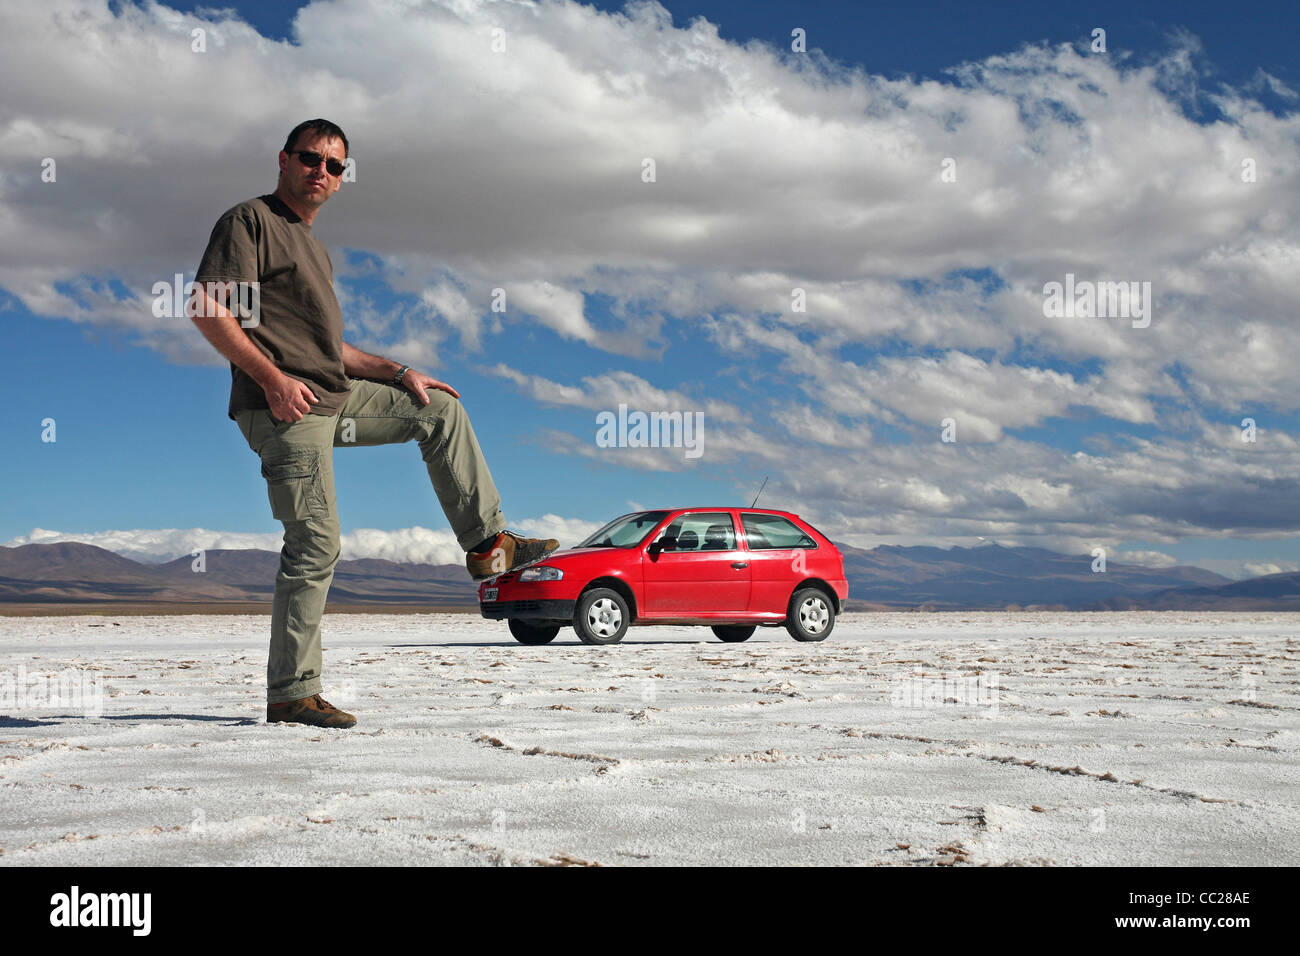 Red car and tourist on the Salar Grande saltflat in the Jujuy province of Argentina Stock Photo